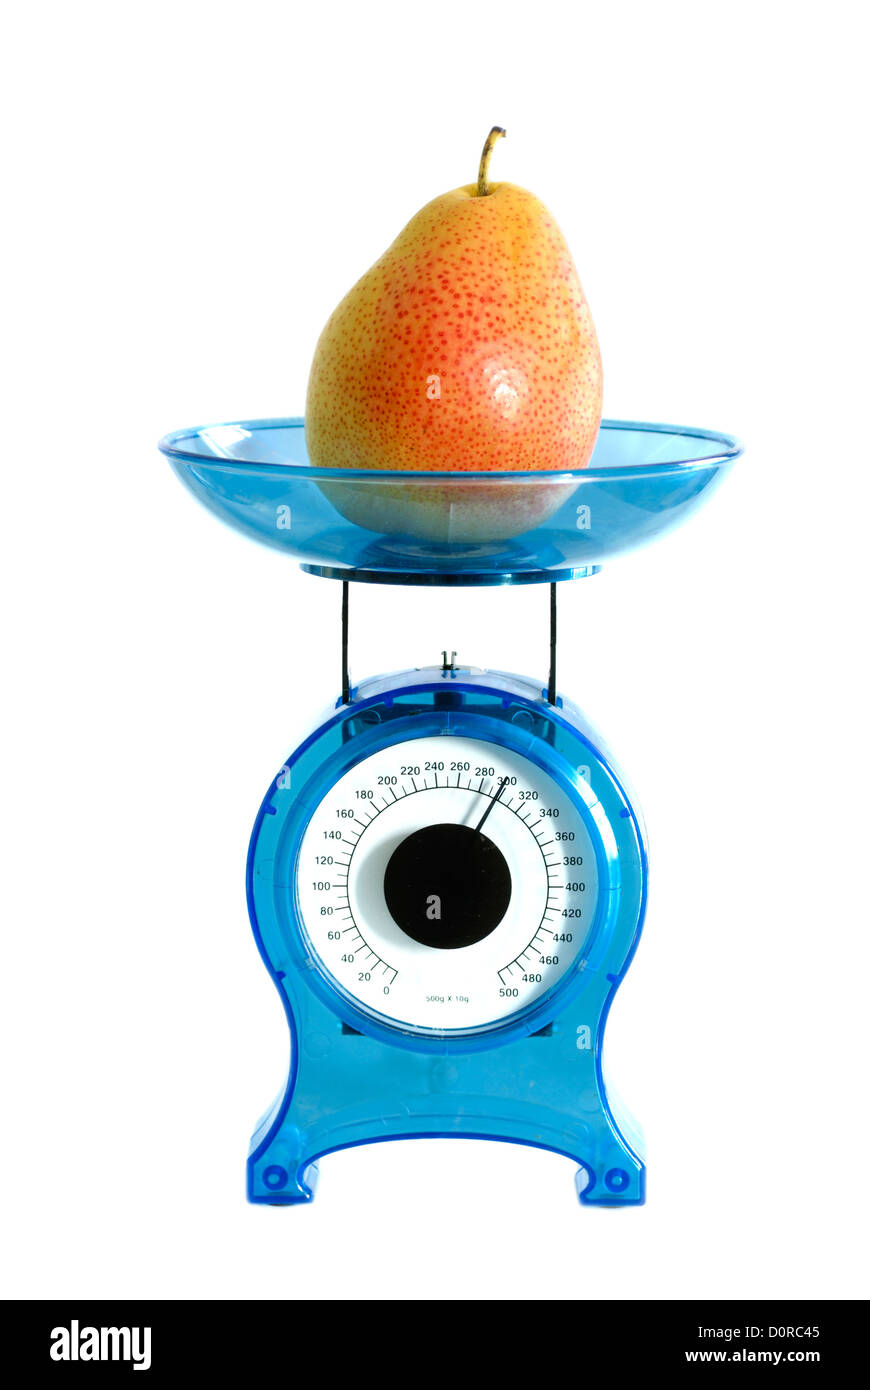 Pear on kitchen scale - Stock Image